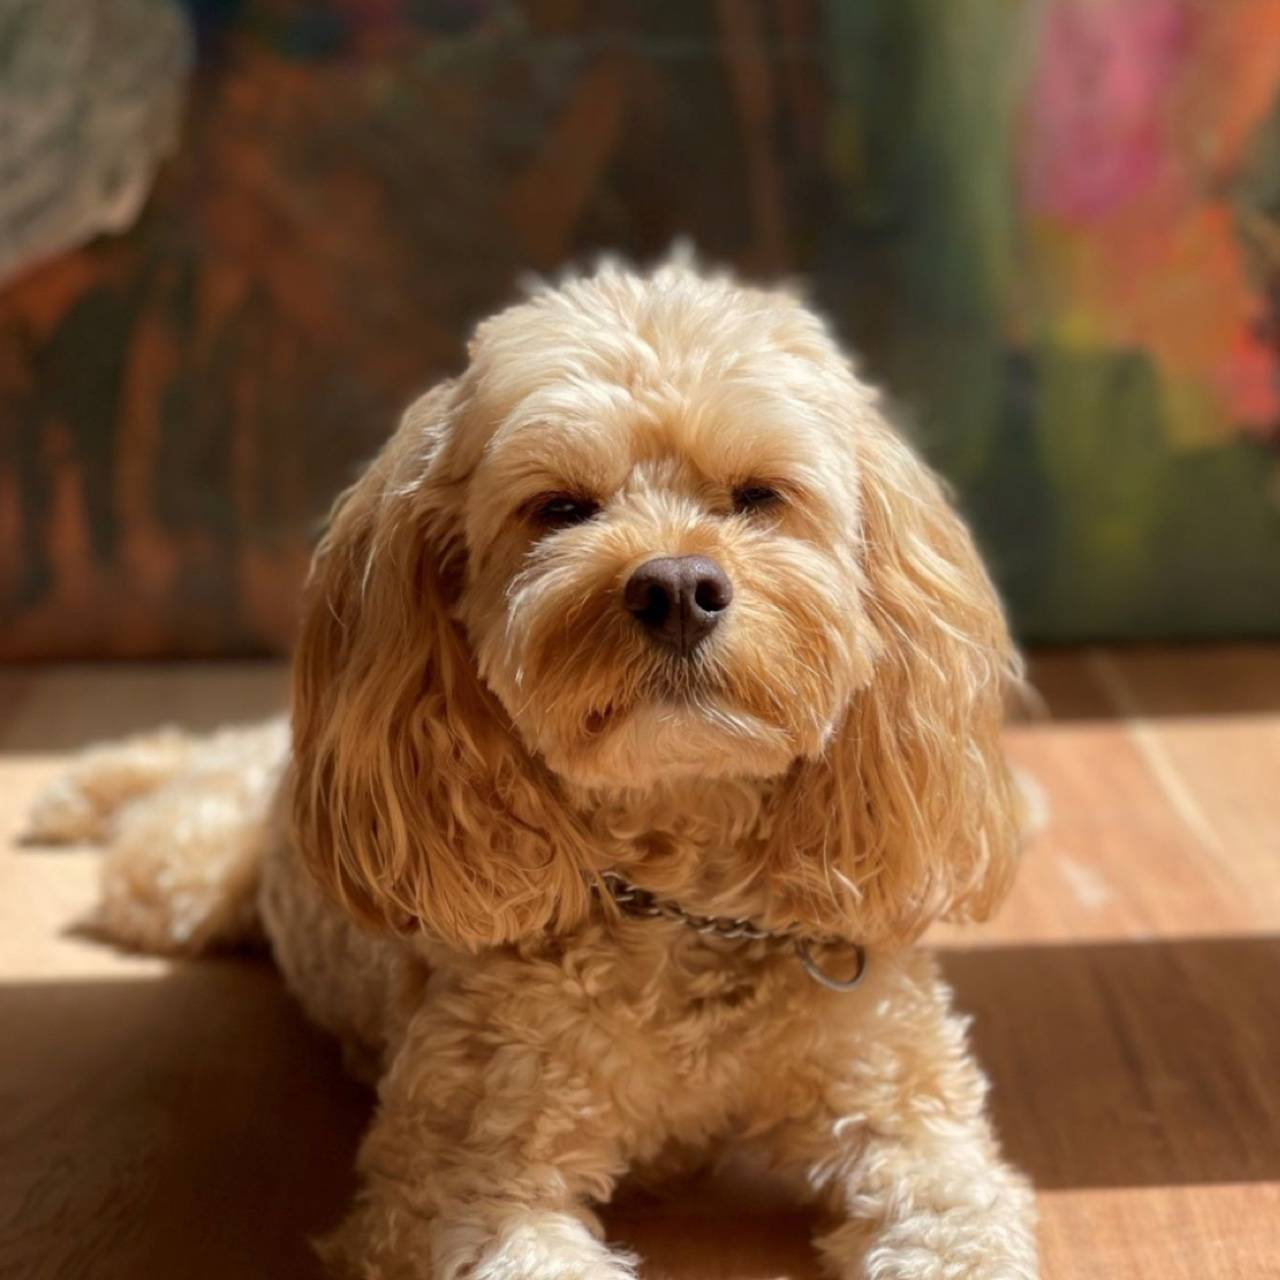 Chewy the Cavoodle